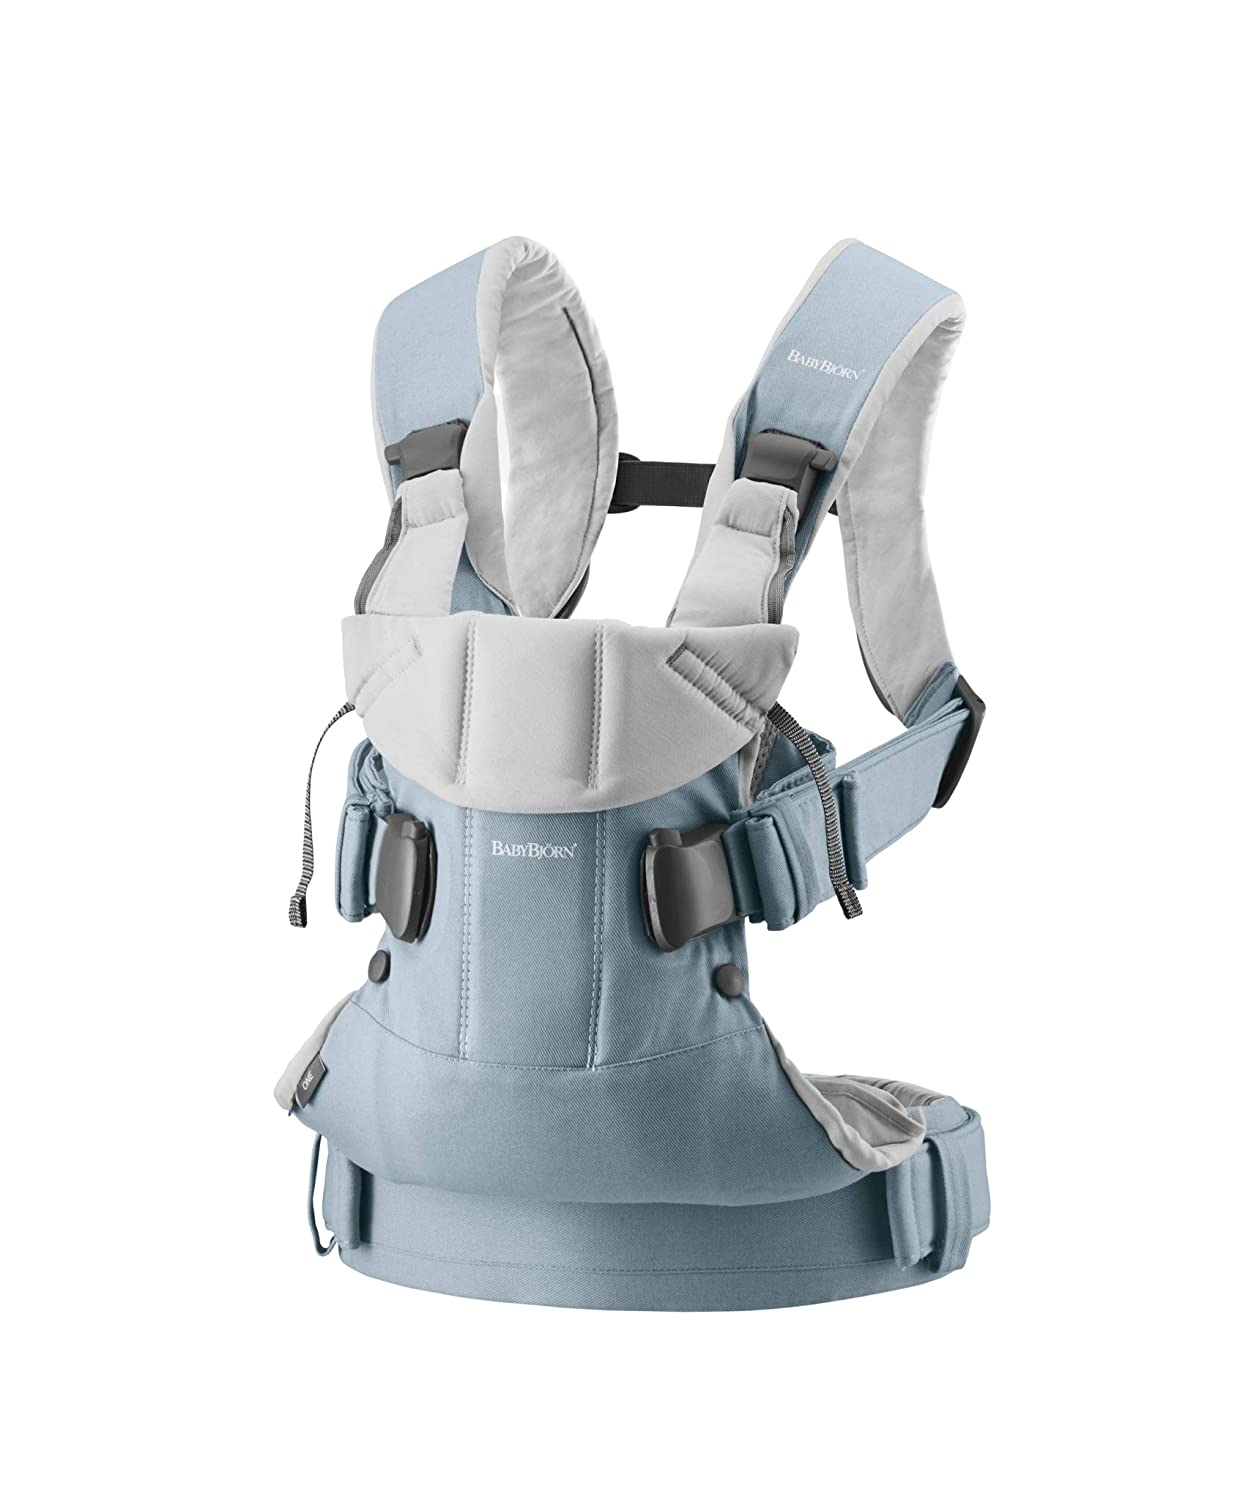 BABYBJÖRN Baby Carrier One, Cotton, Light Blue/Light Gray